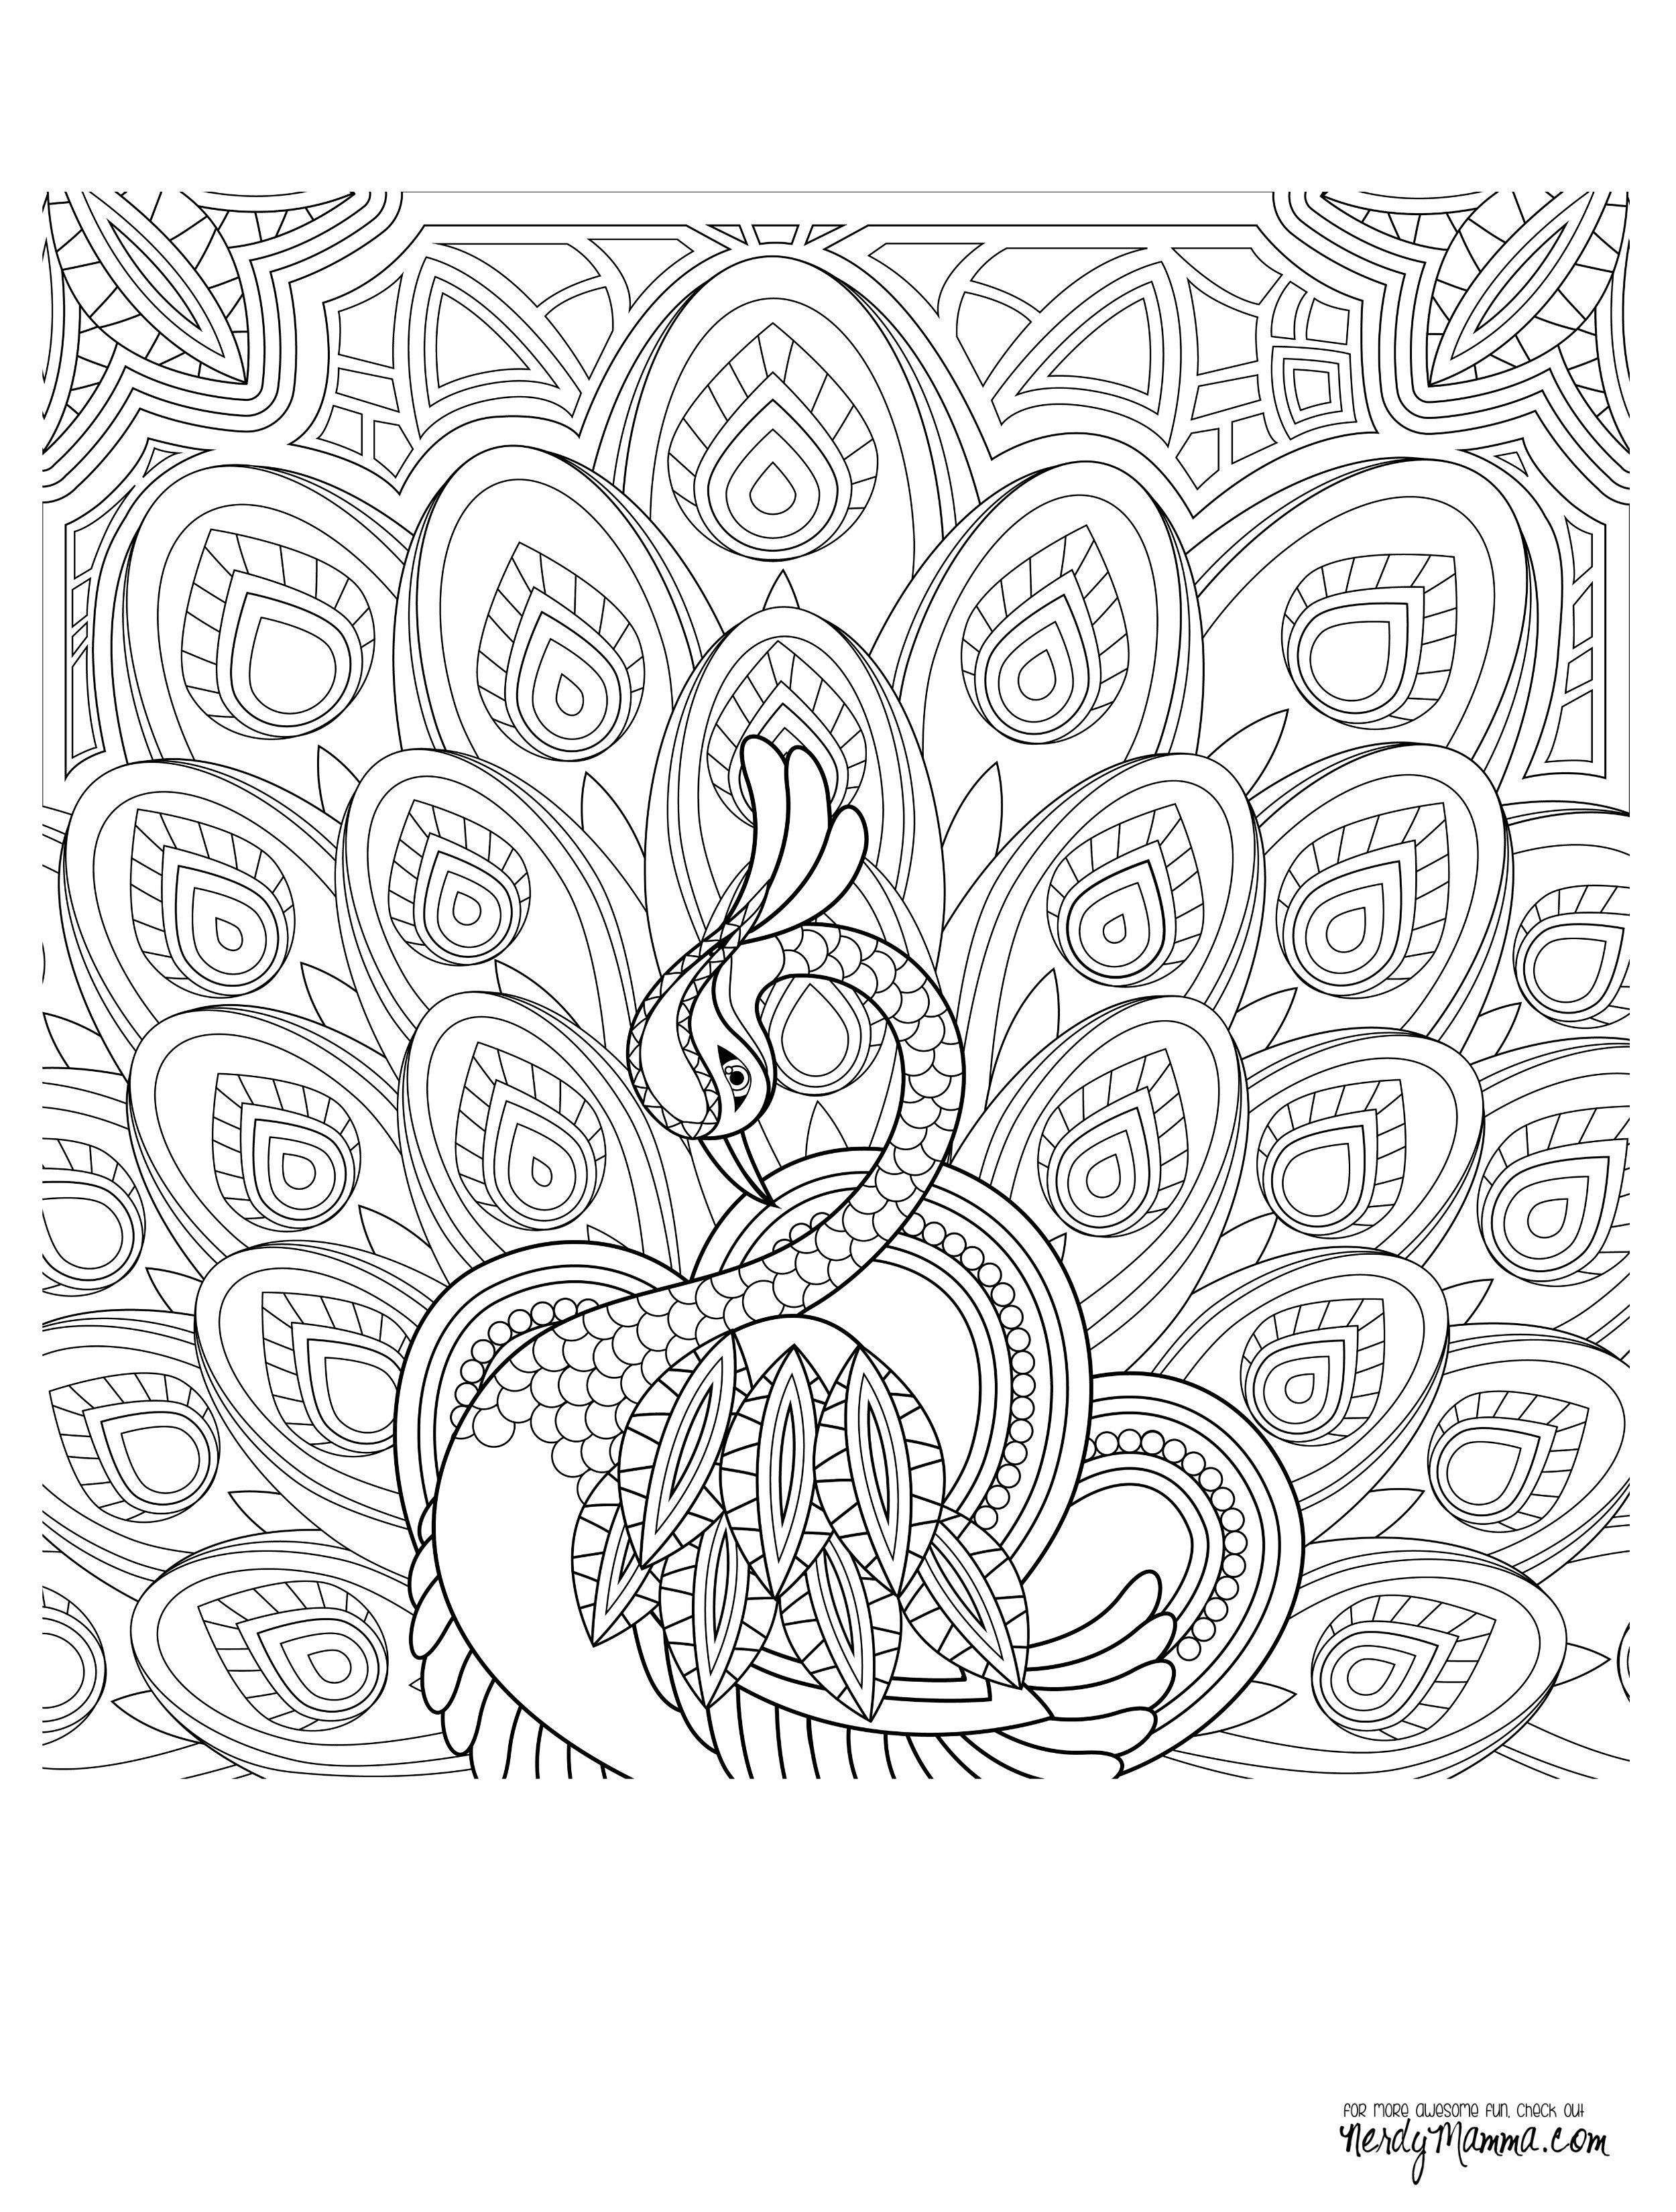 coloring pages bookmarks Download-Inspirational Colored Glass Sheets 15-s